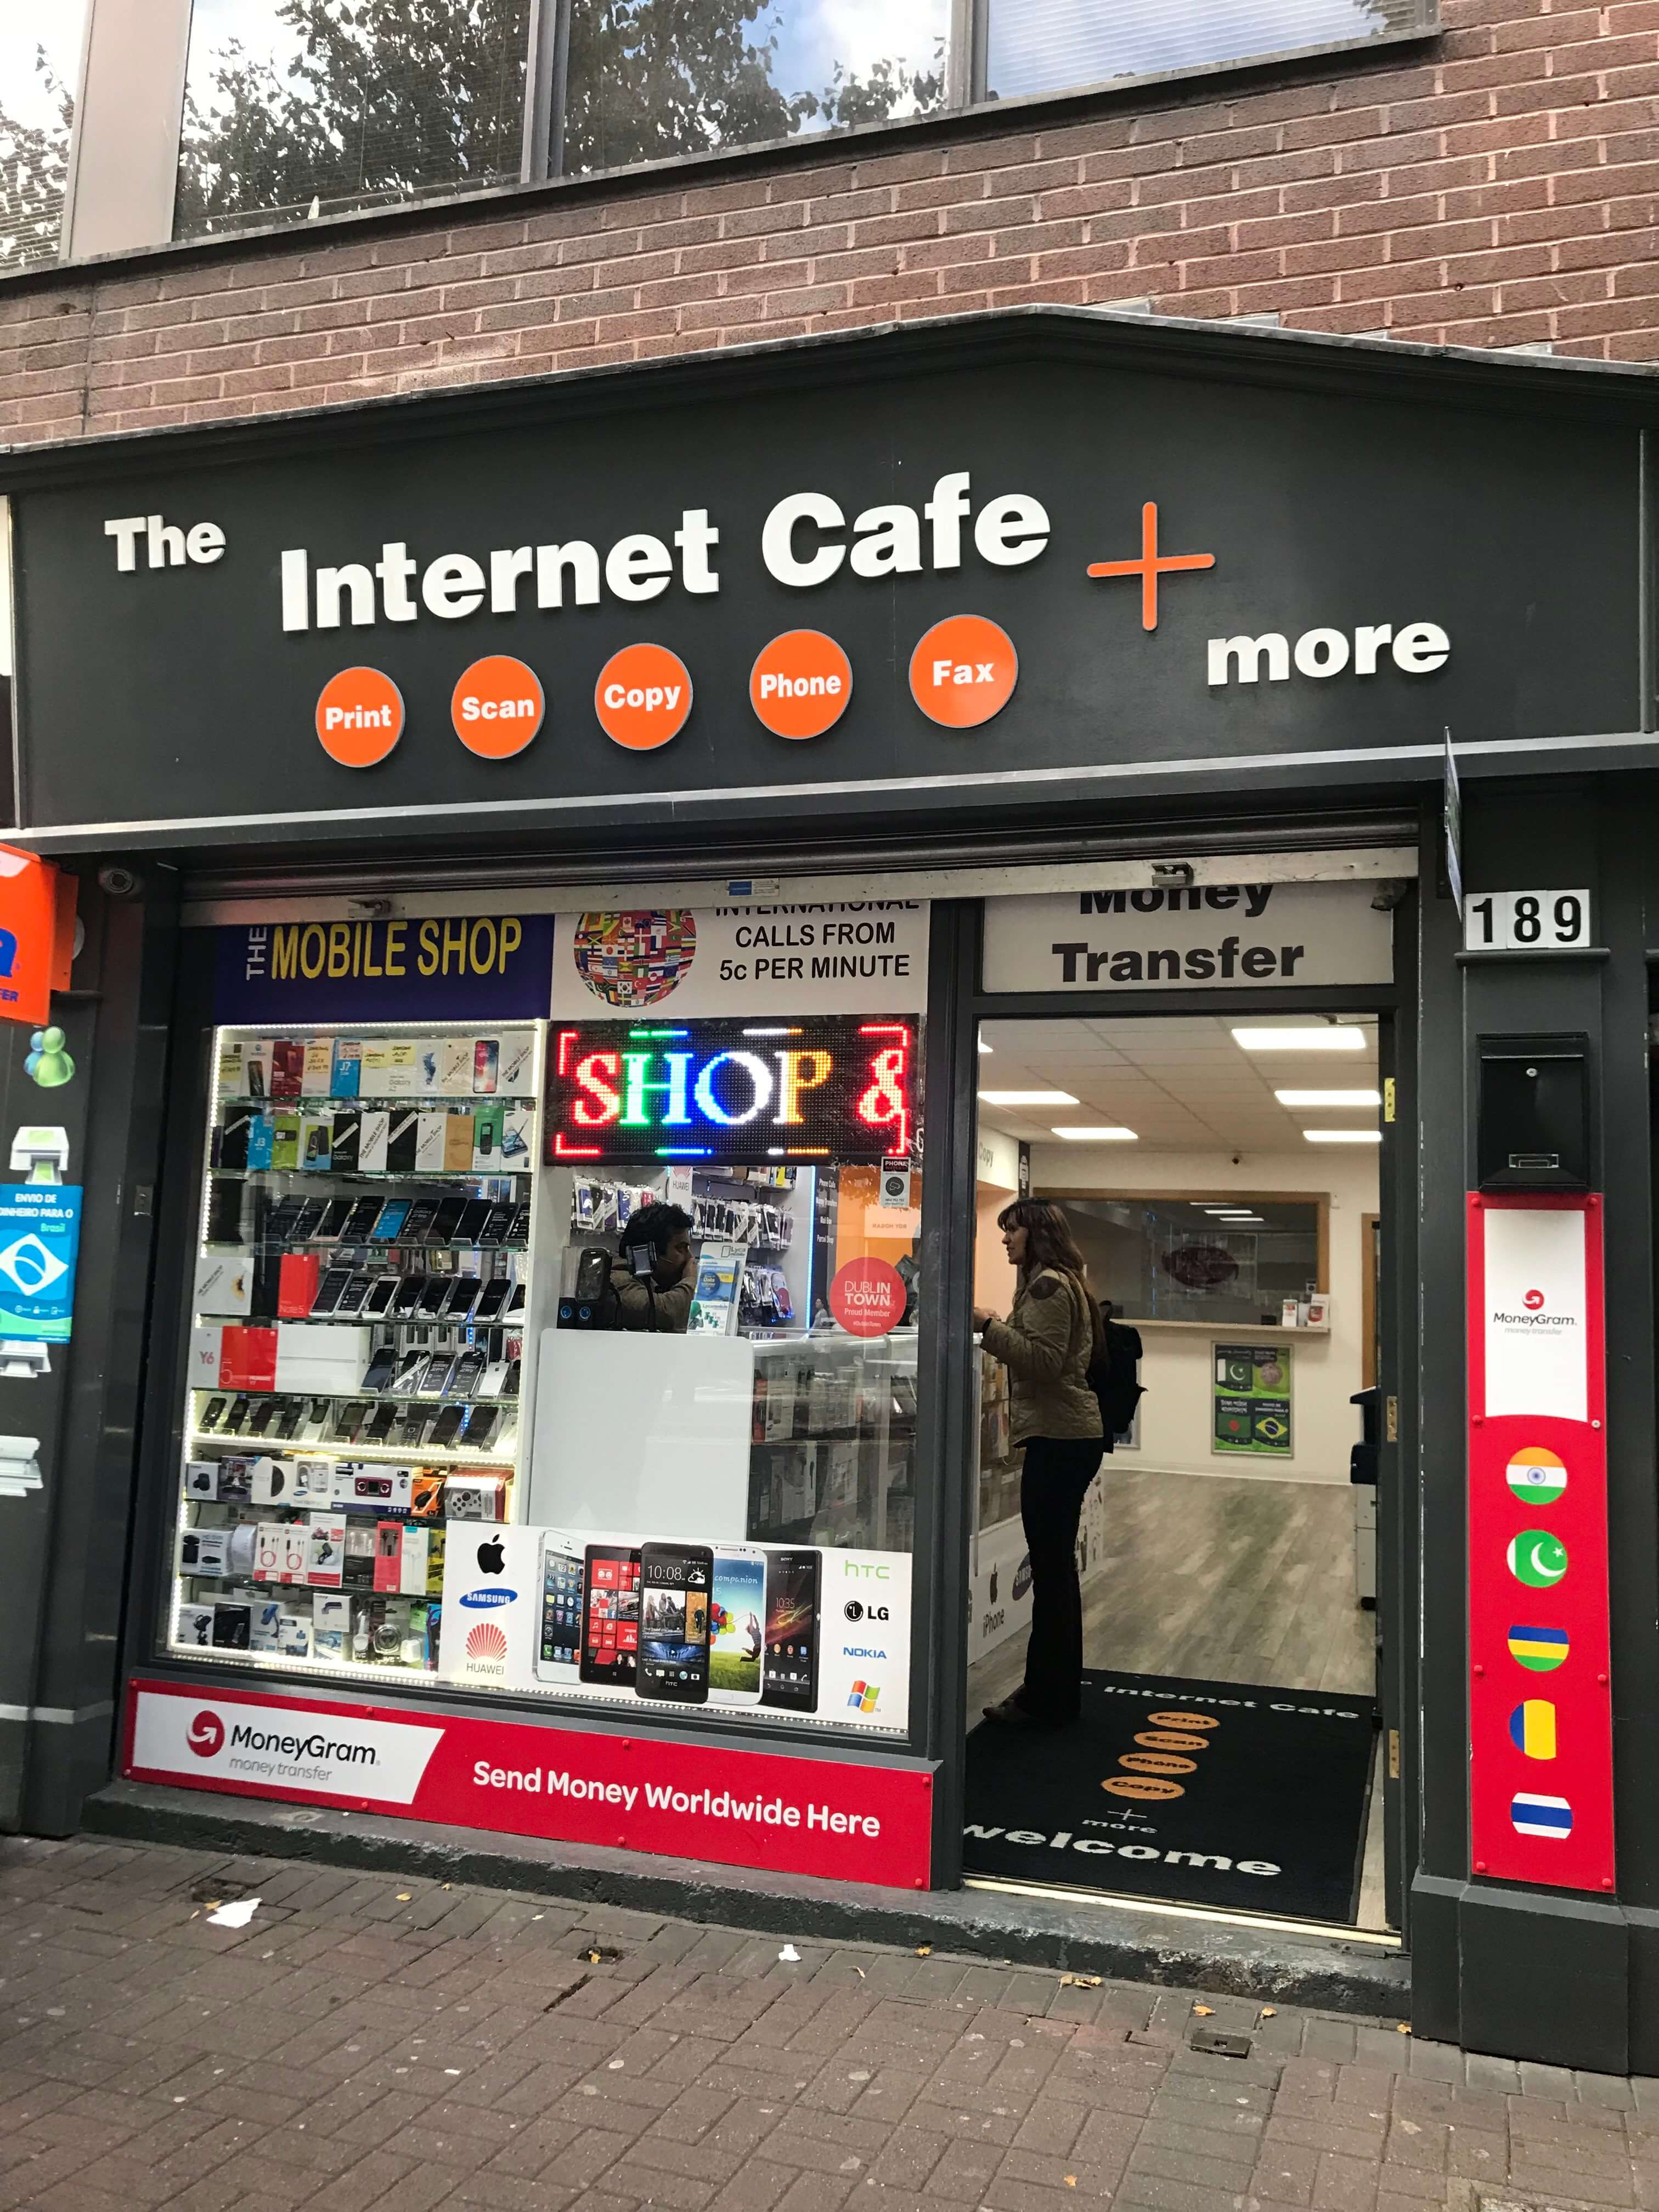 The Internet Cafe + more, Parnell Street